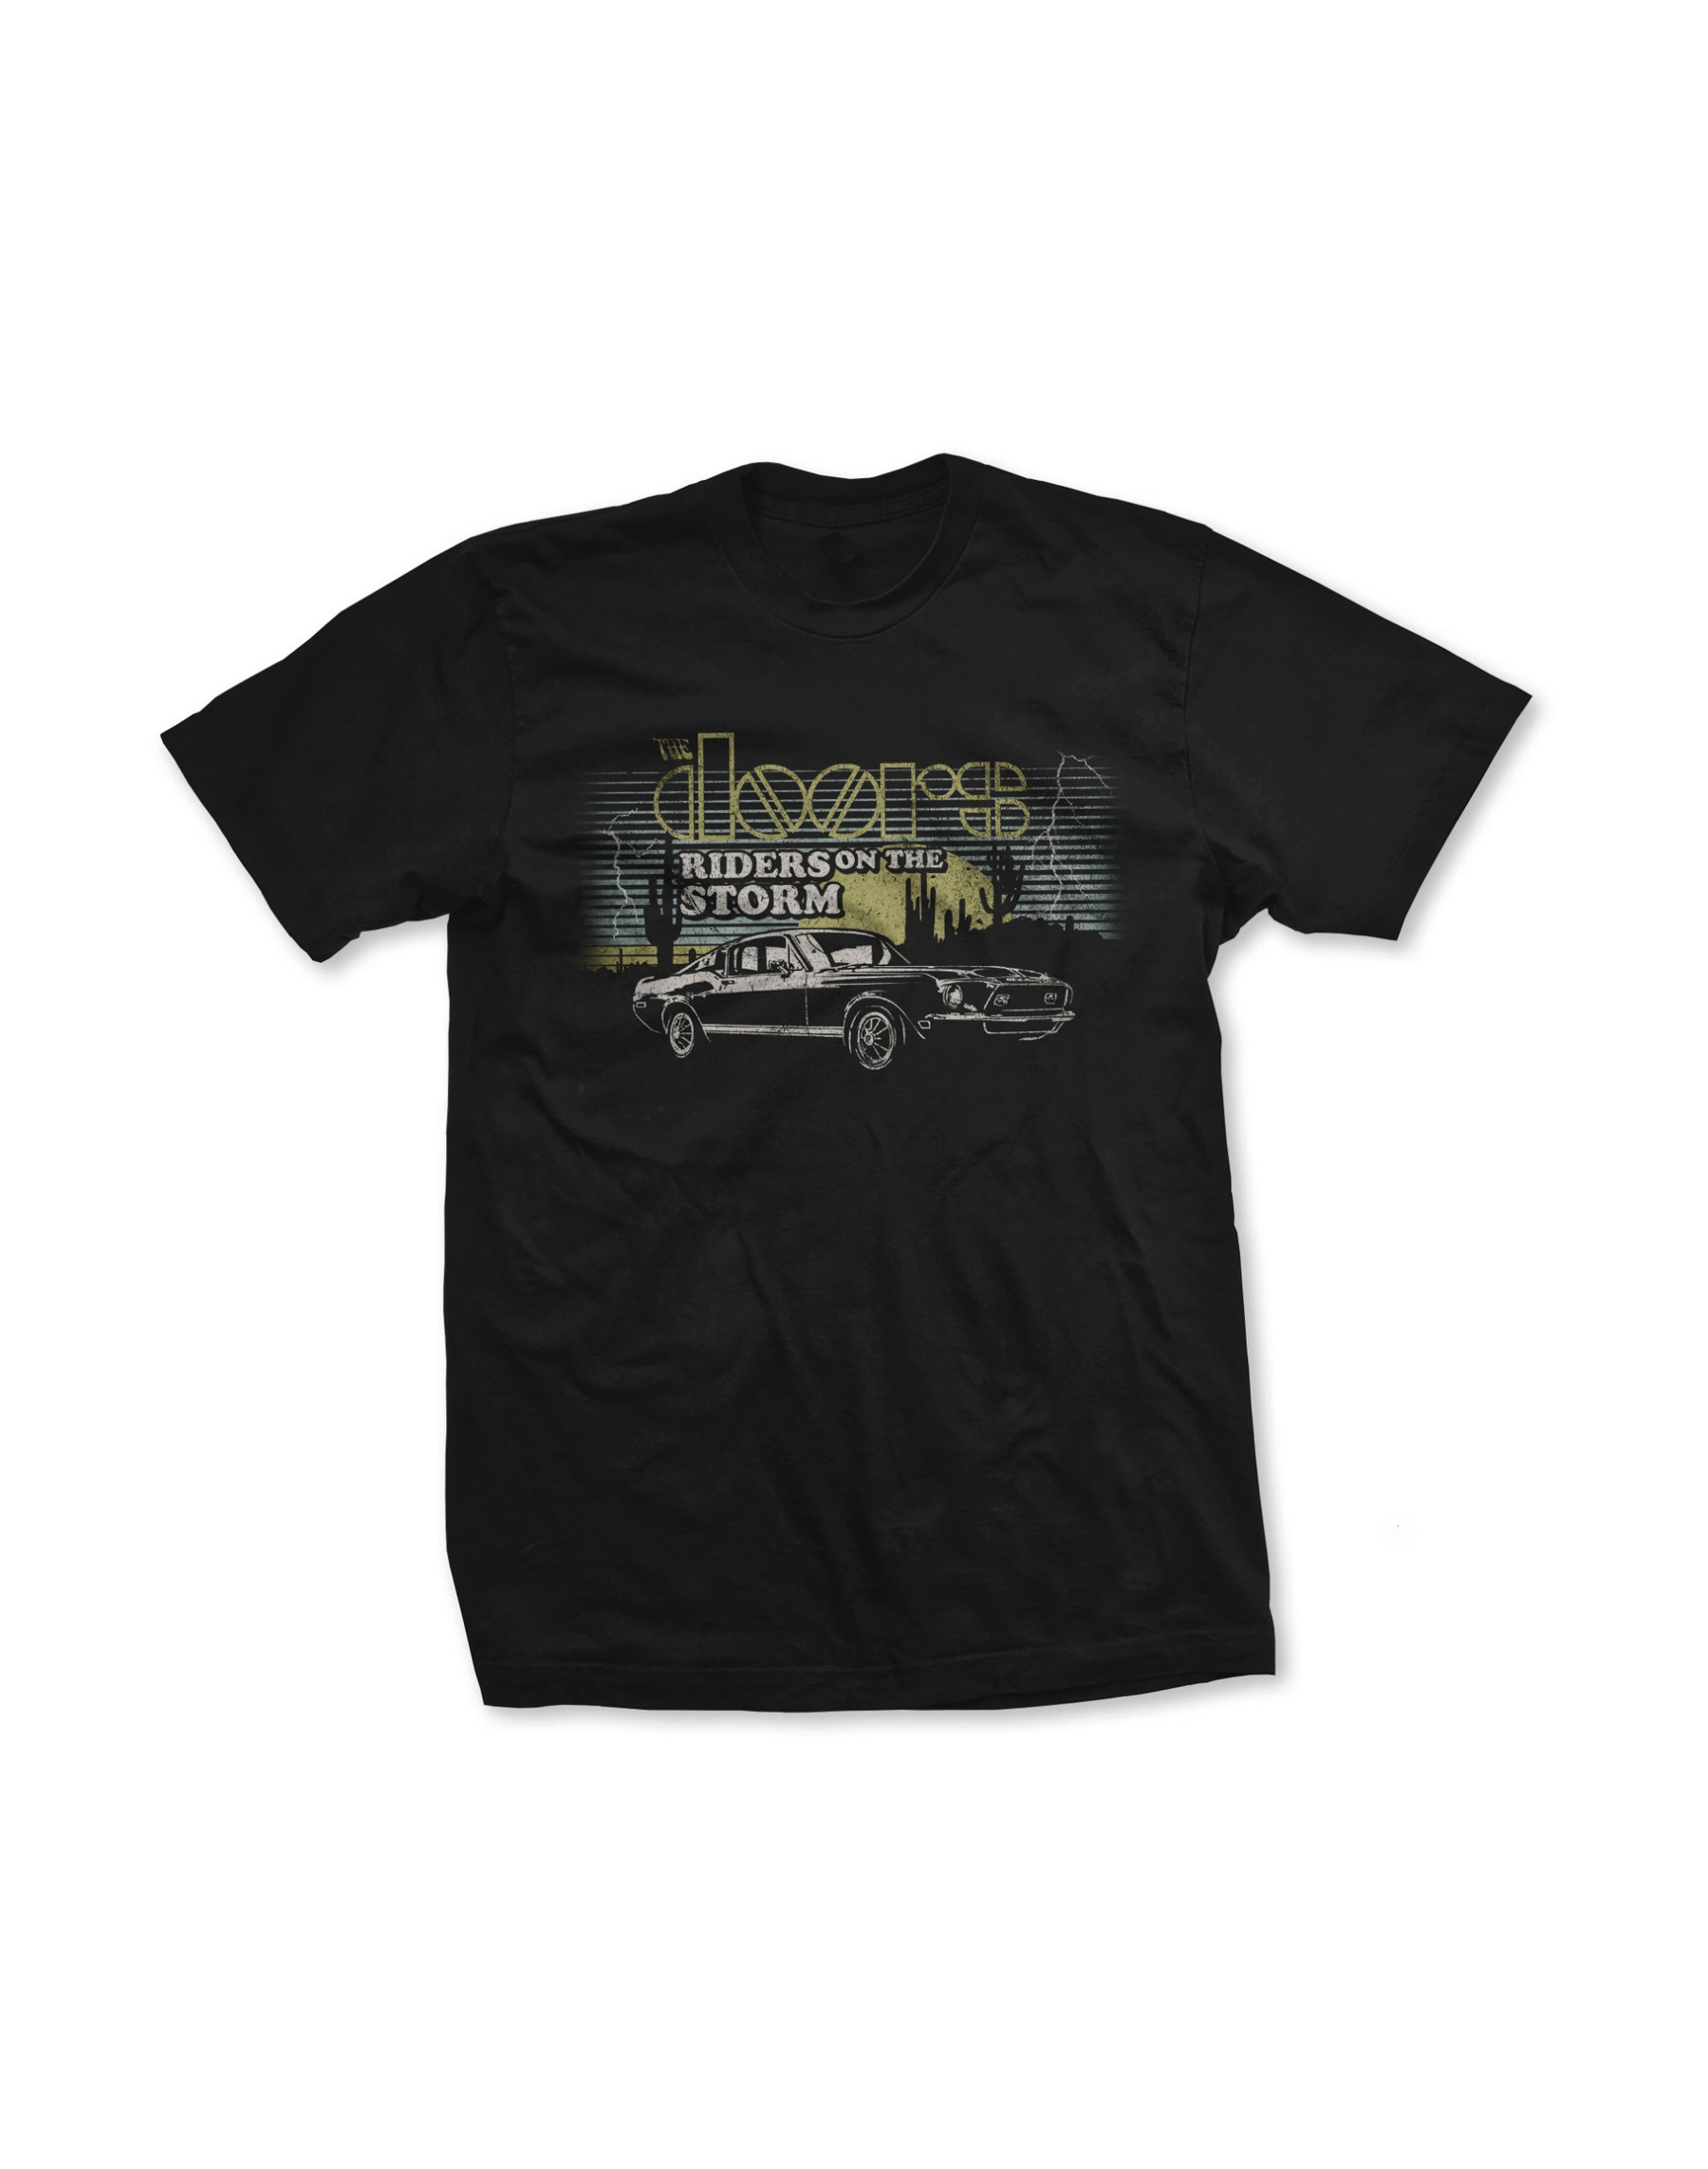 The Doors Boys Riders On The Storm T-Shirt